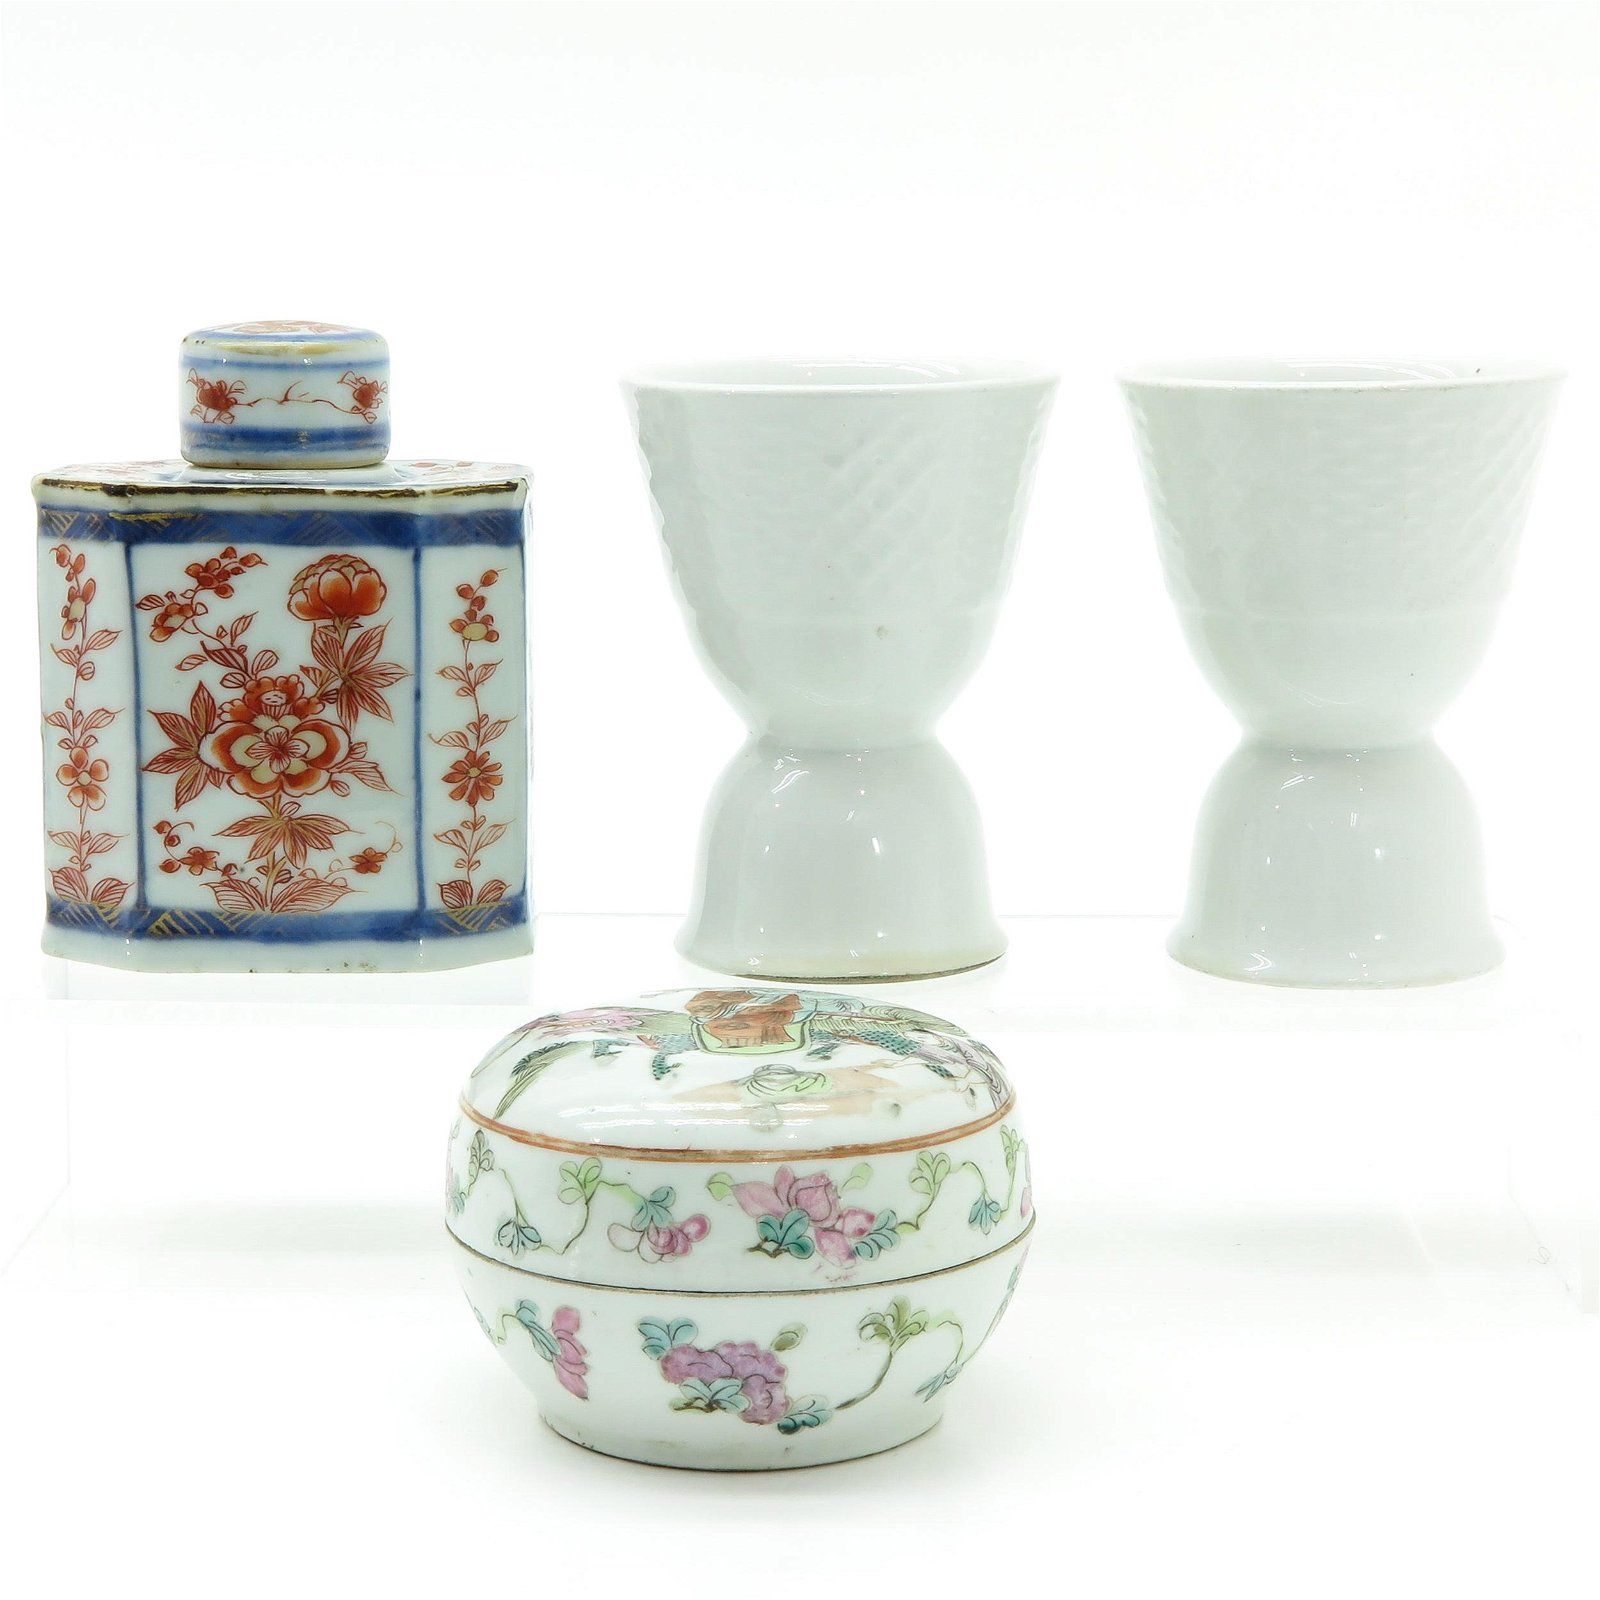 A Diverse Collection of Chinese Porcelain items